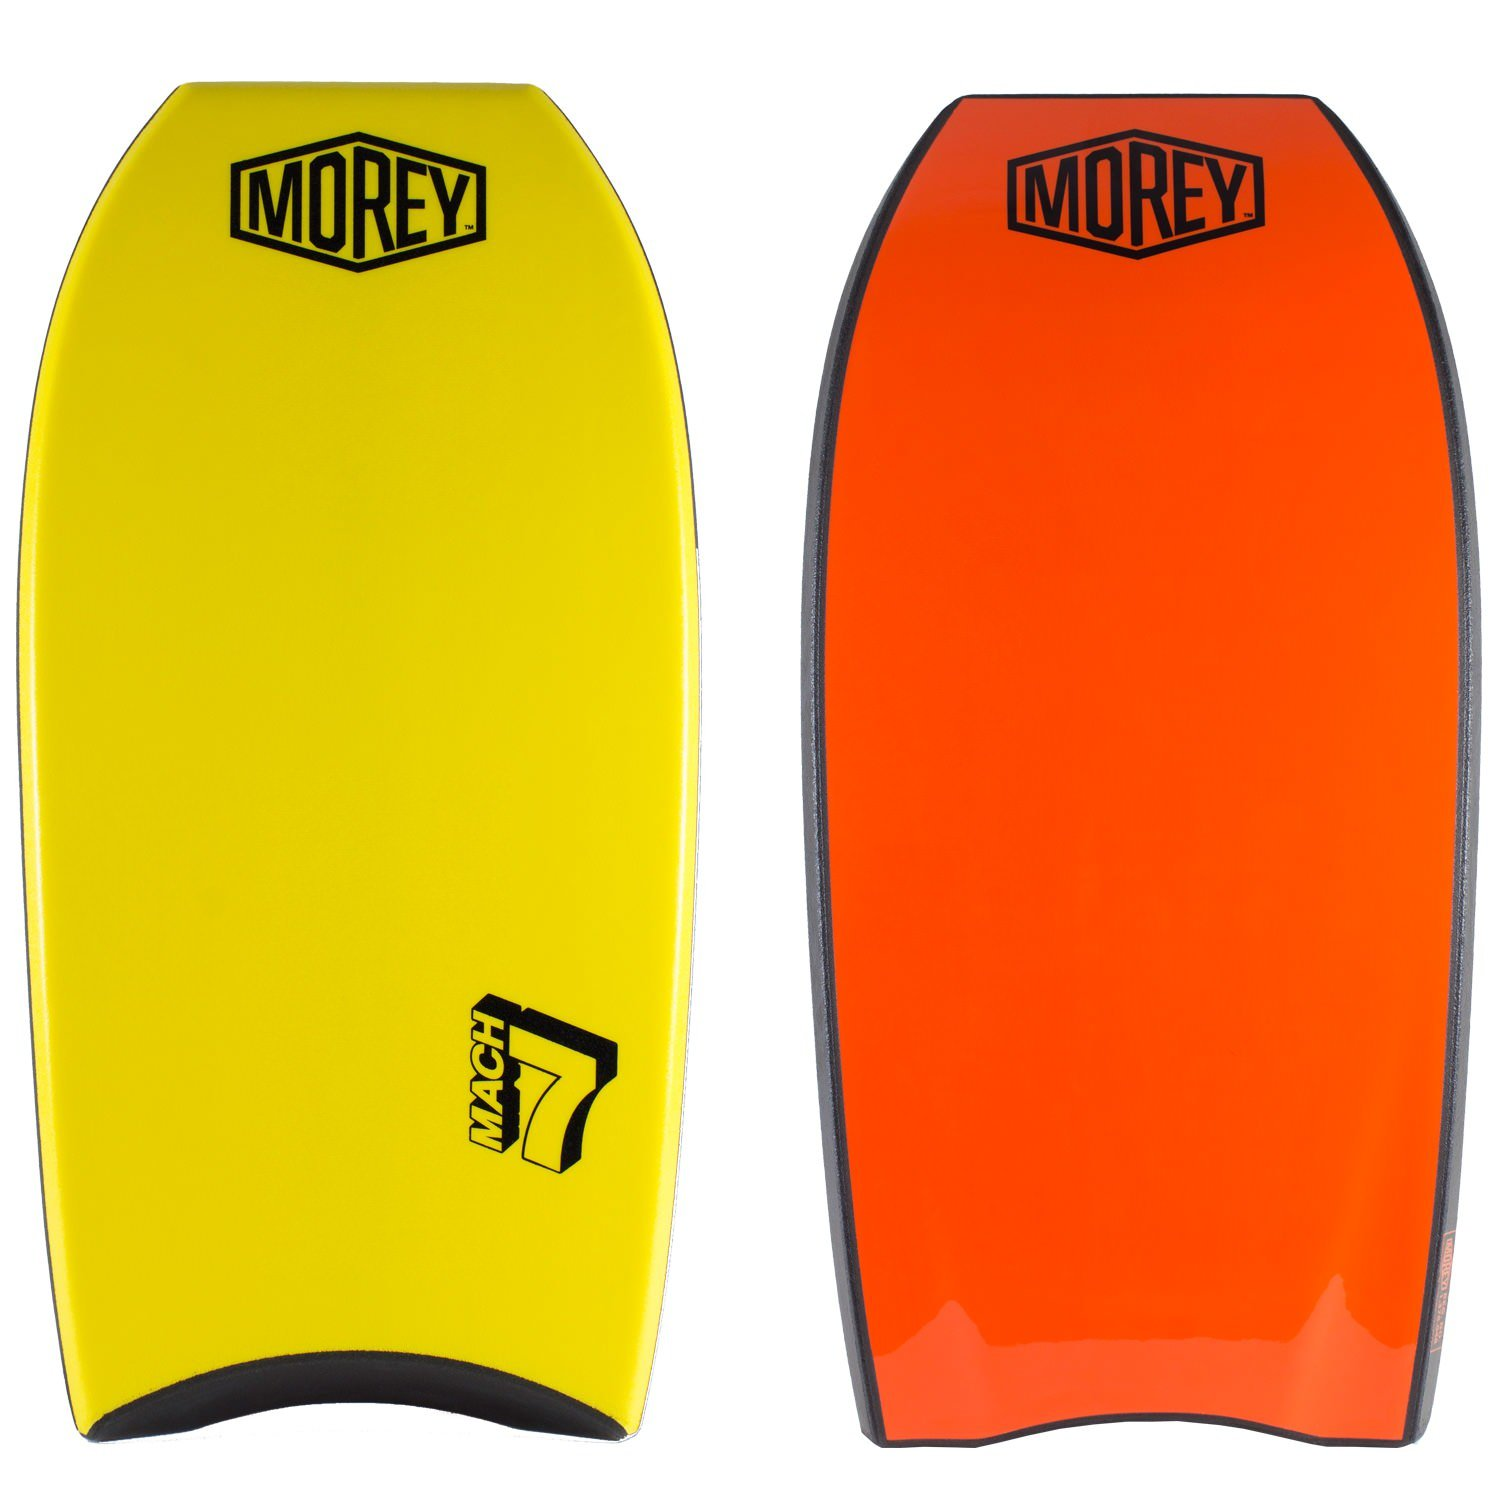 """Morey Mach 7 Body Board with Crescent Tail 41"""" Yellow and Red 1 Pc Wham-O 82435"""